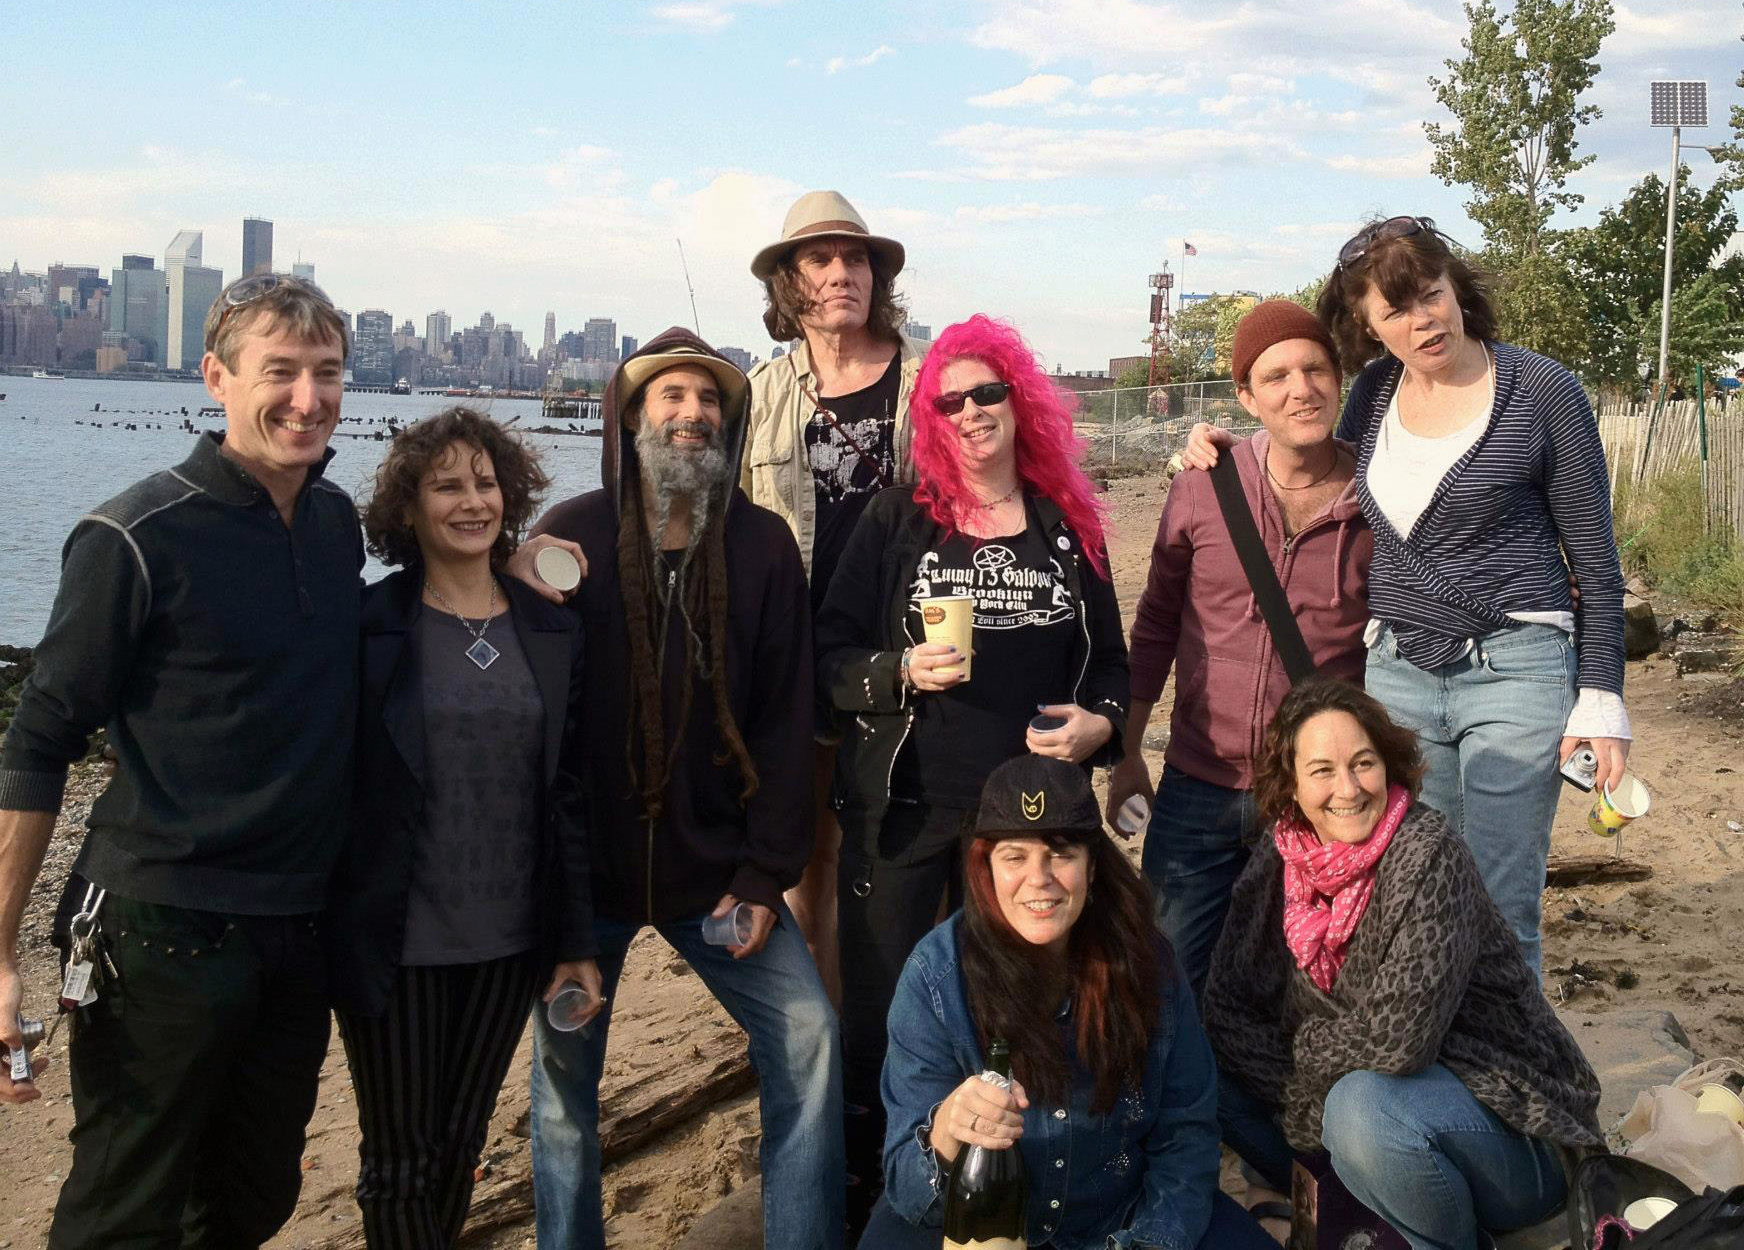 Gathering on the Williamsburg waterfront to release the ashes of a friend into the river.